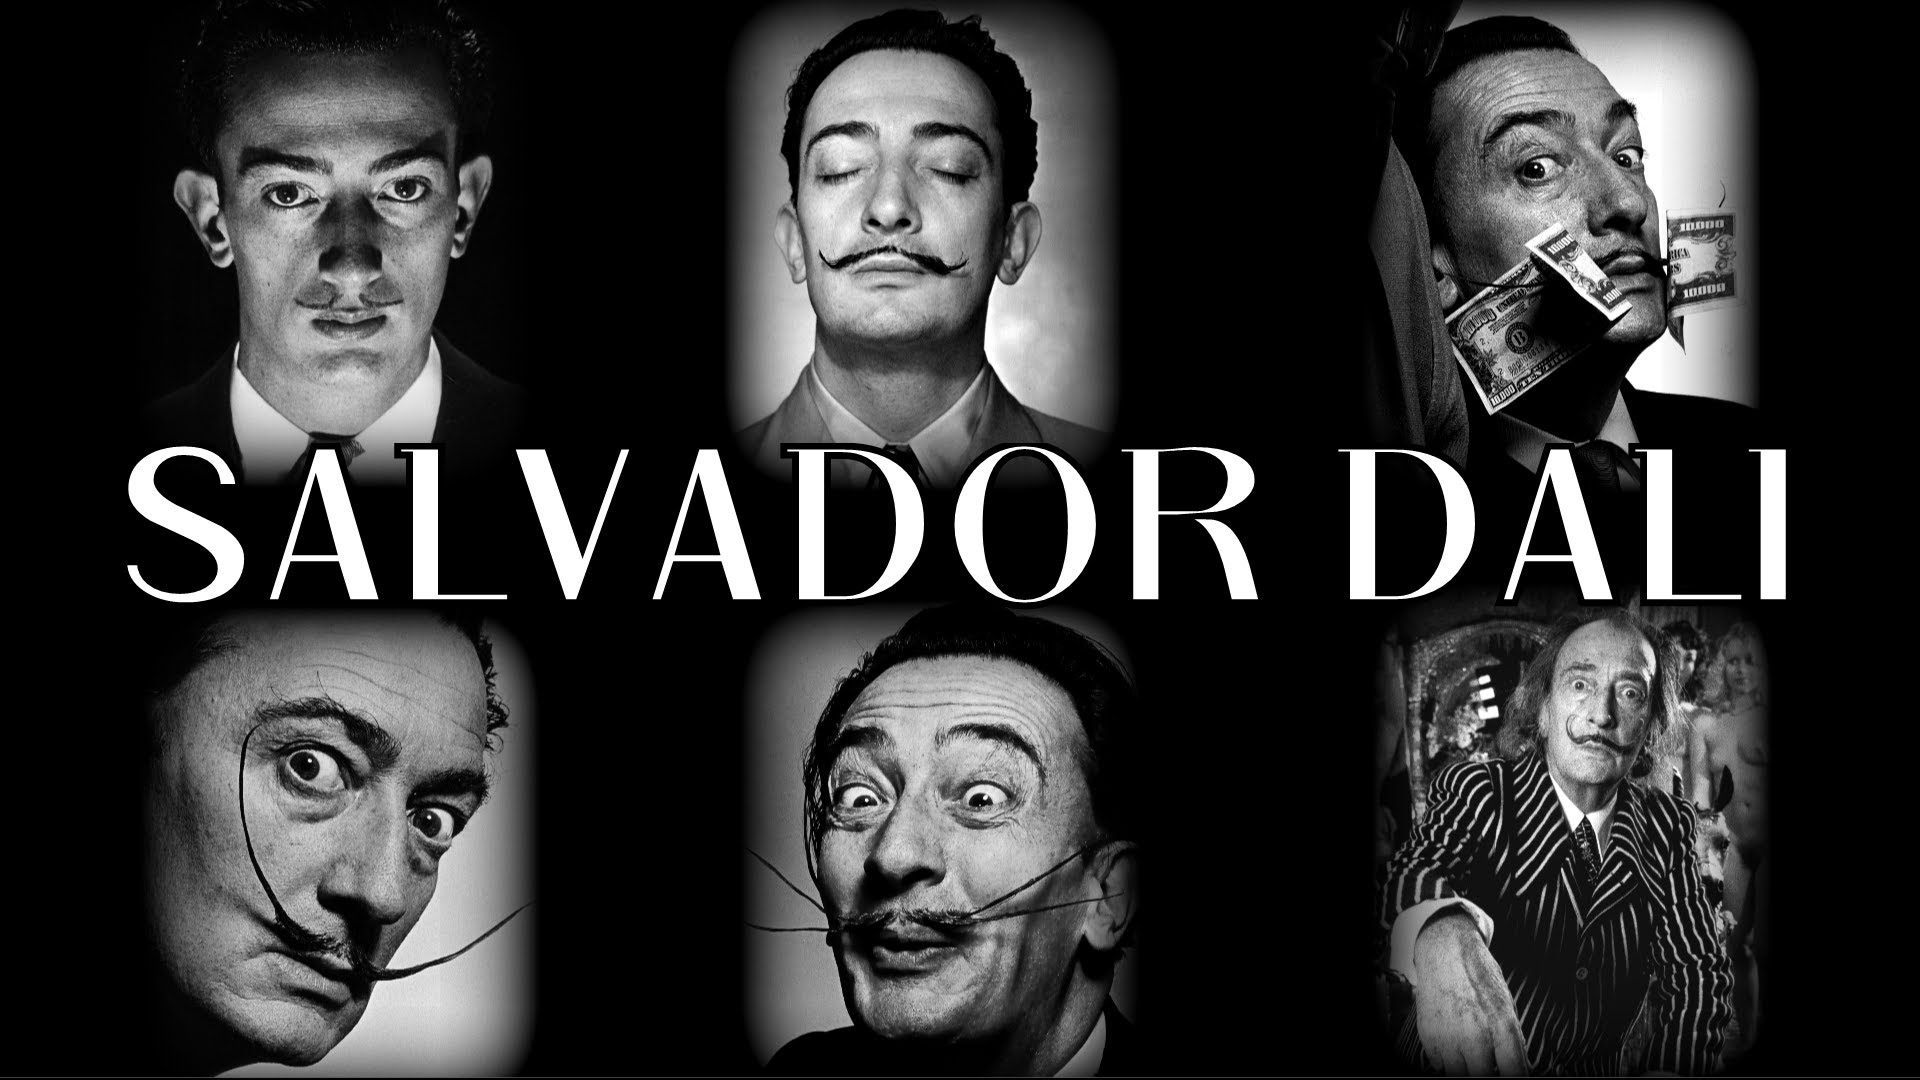 Salvador Dali Wallpapers Images Photos Pictures Backgrounds